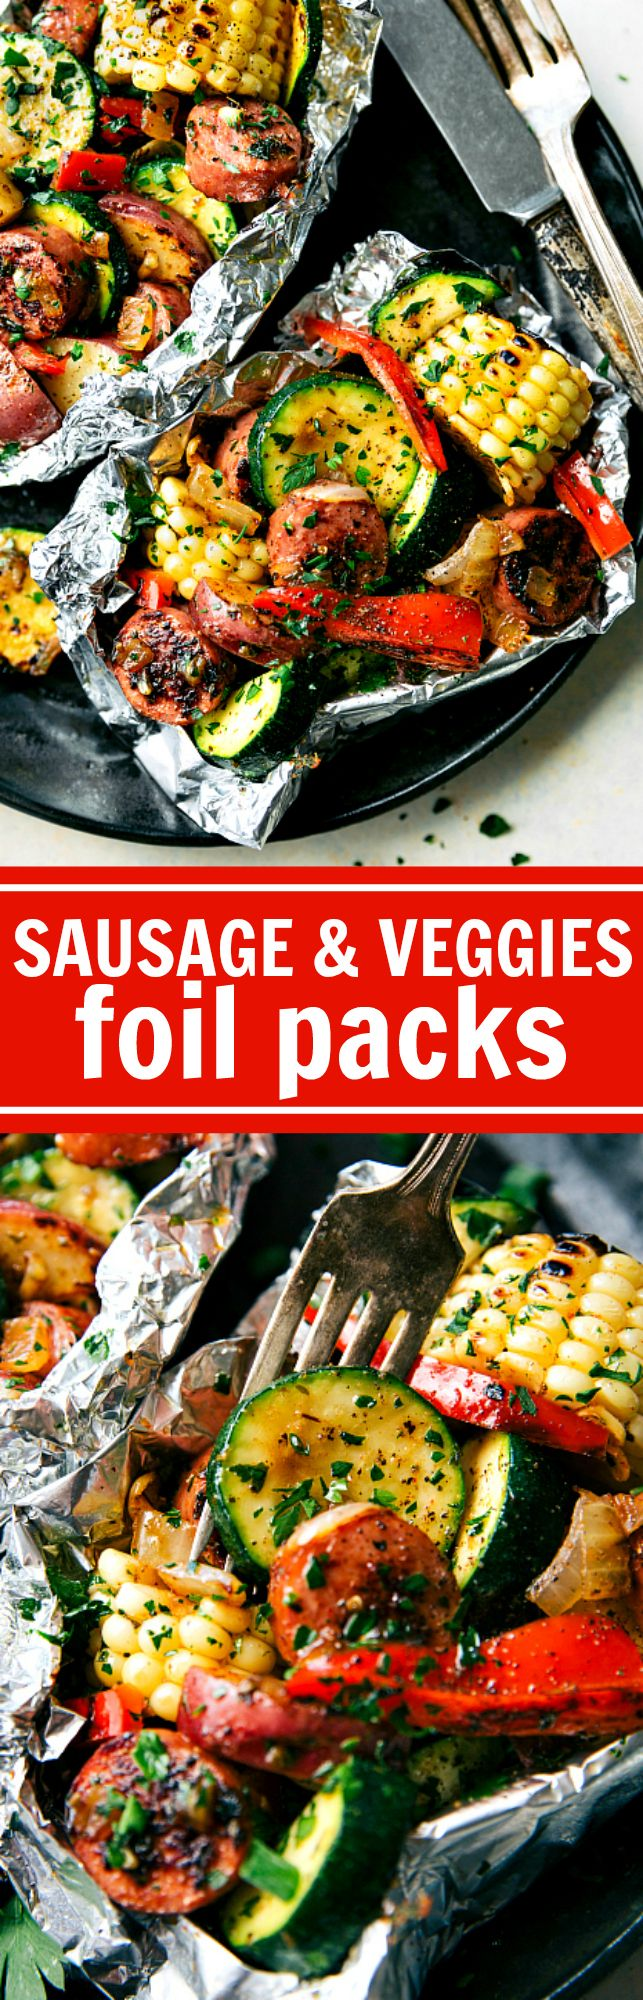 These delicious and easy tin foil packets are so quick to assemble! They are packed with sausage, tons of veggies, and the very best seasoning mix. Recipe from chelseasmessyapron.com